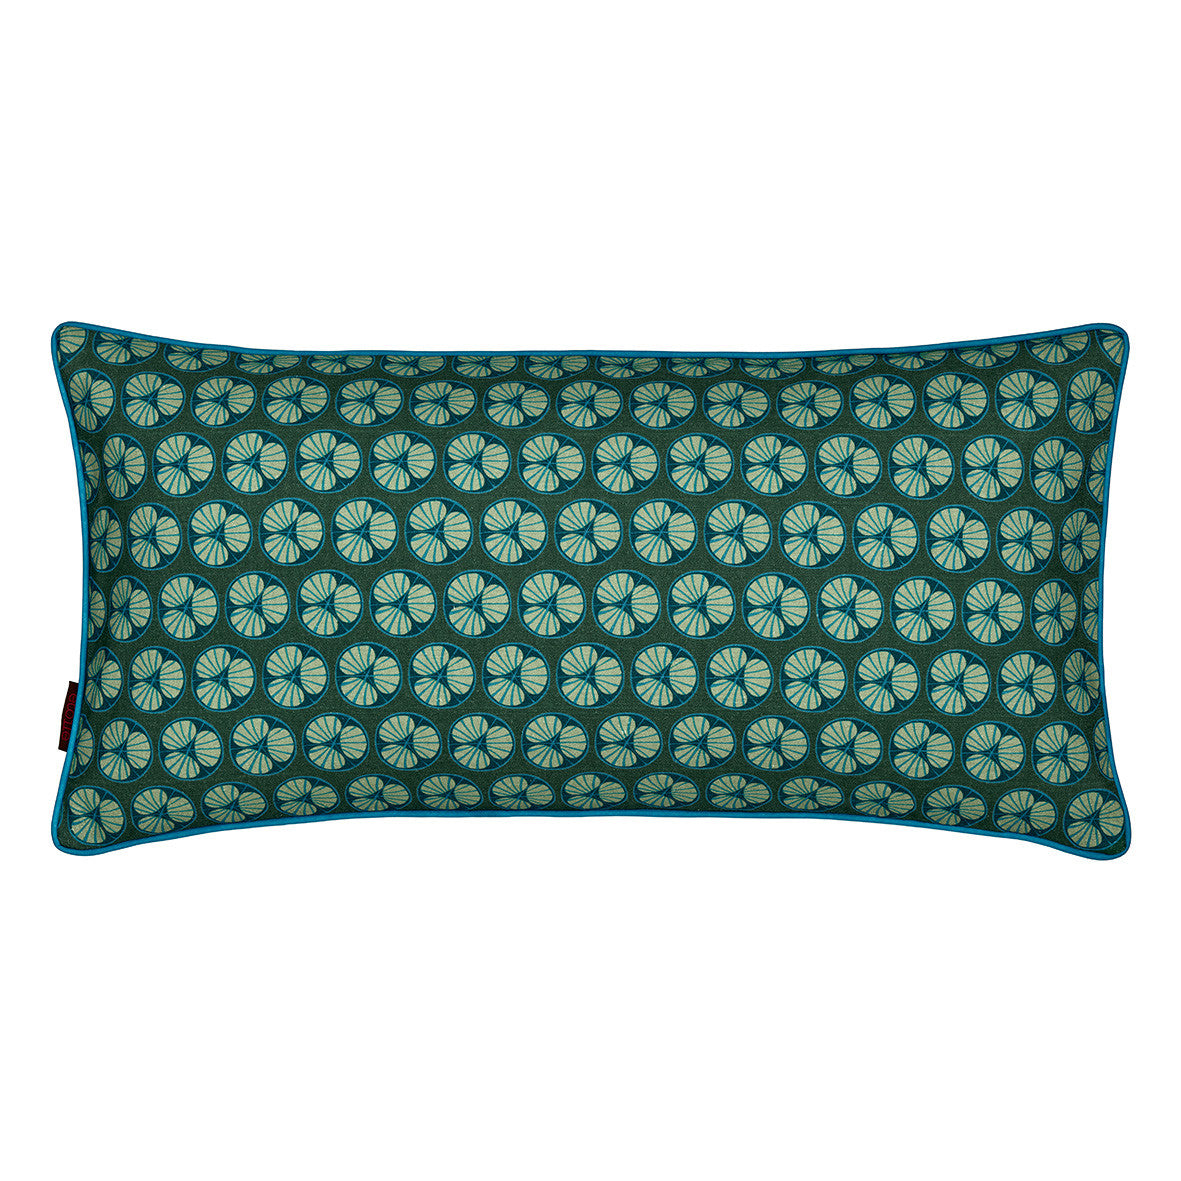 Graphic Fruit Cross Section Pattern Linen Union Printed Cushion in Dark Moss Green